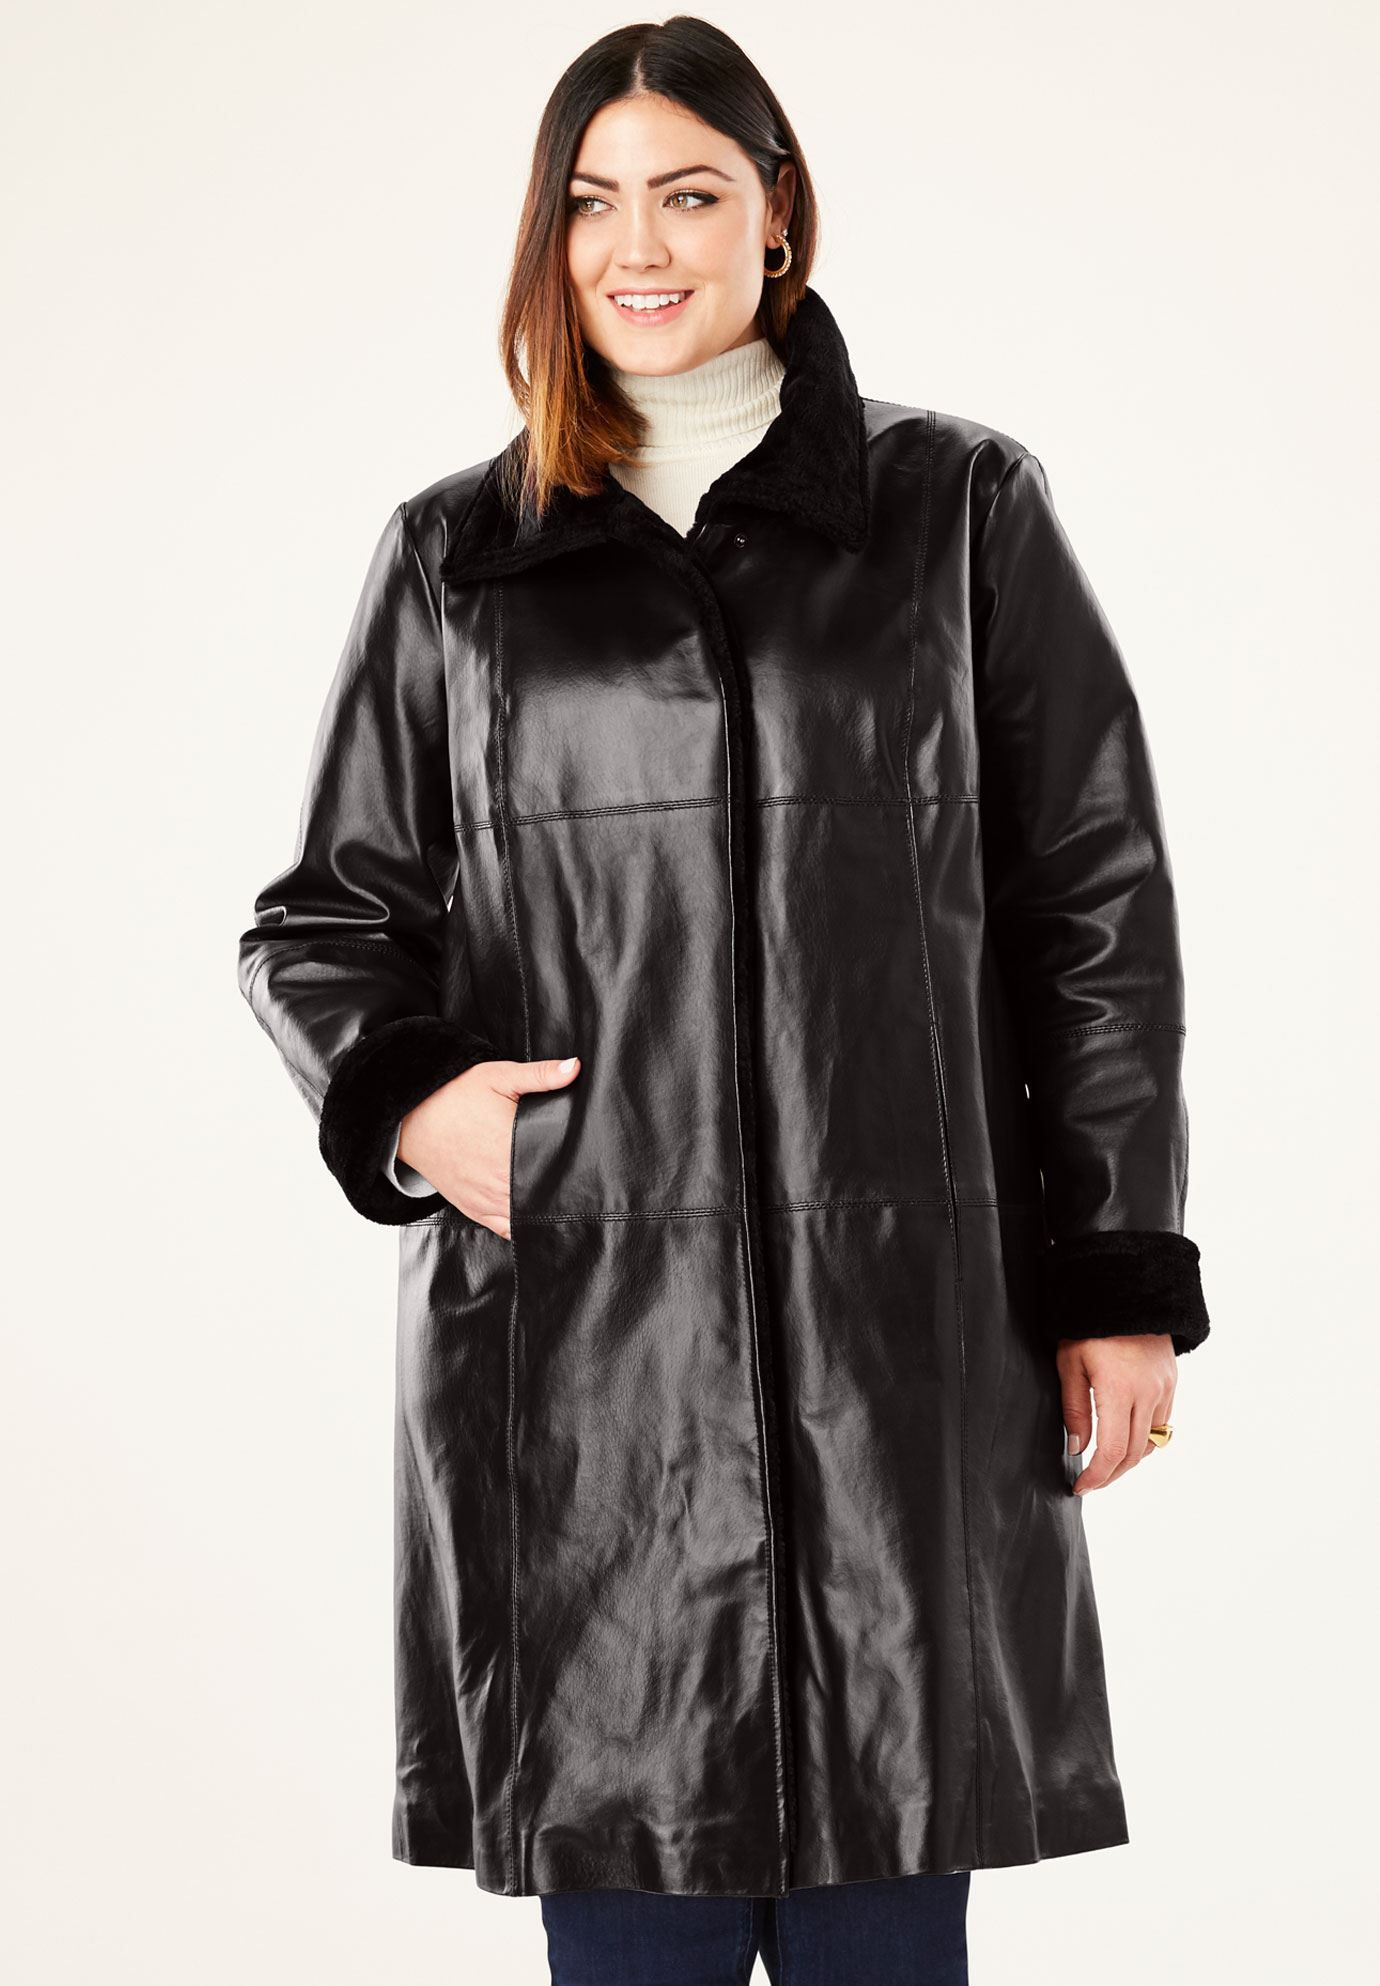 FurTrim Leather Swing Coat, BLACK Plus size leather